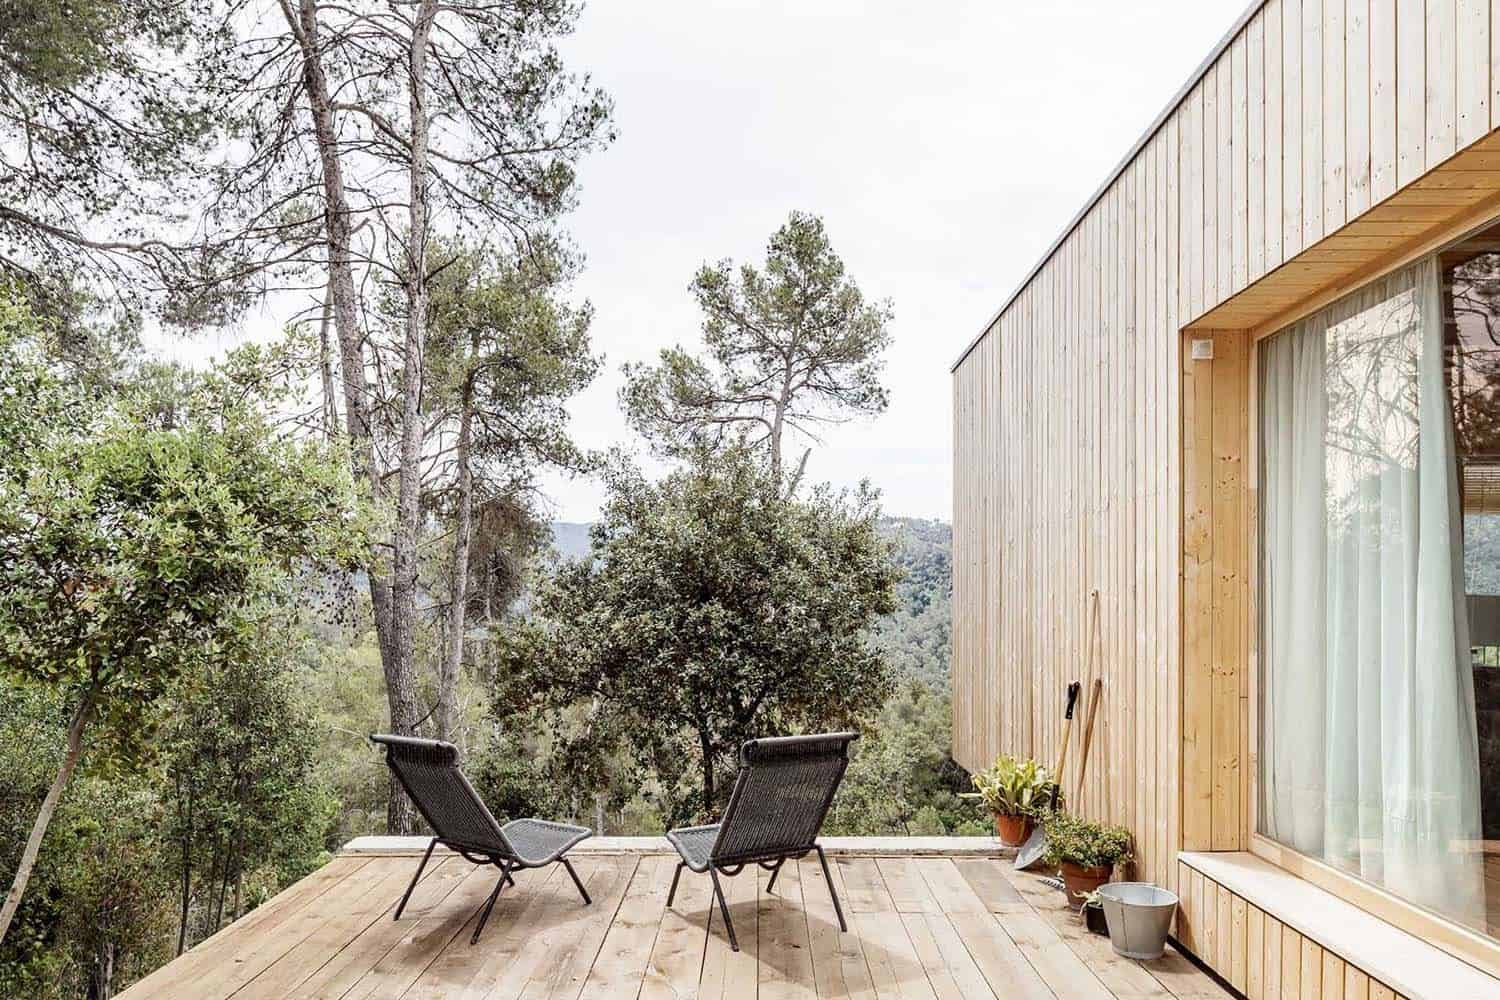 Prefabricated Home Design-Alventosa Morell Arquitectes-09-1 Kindesign